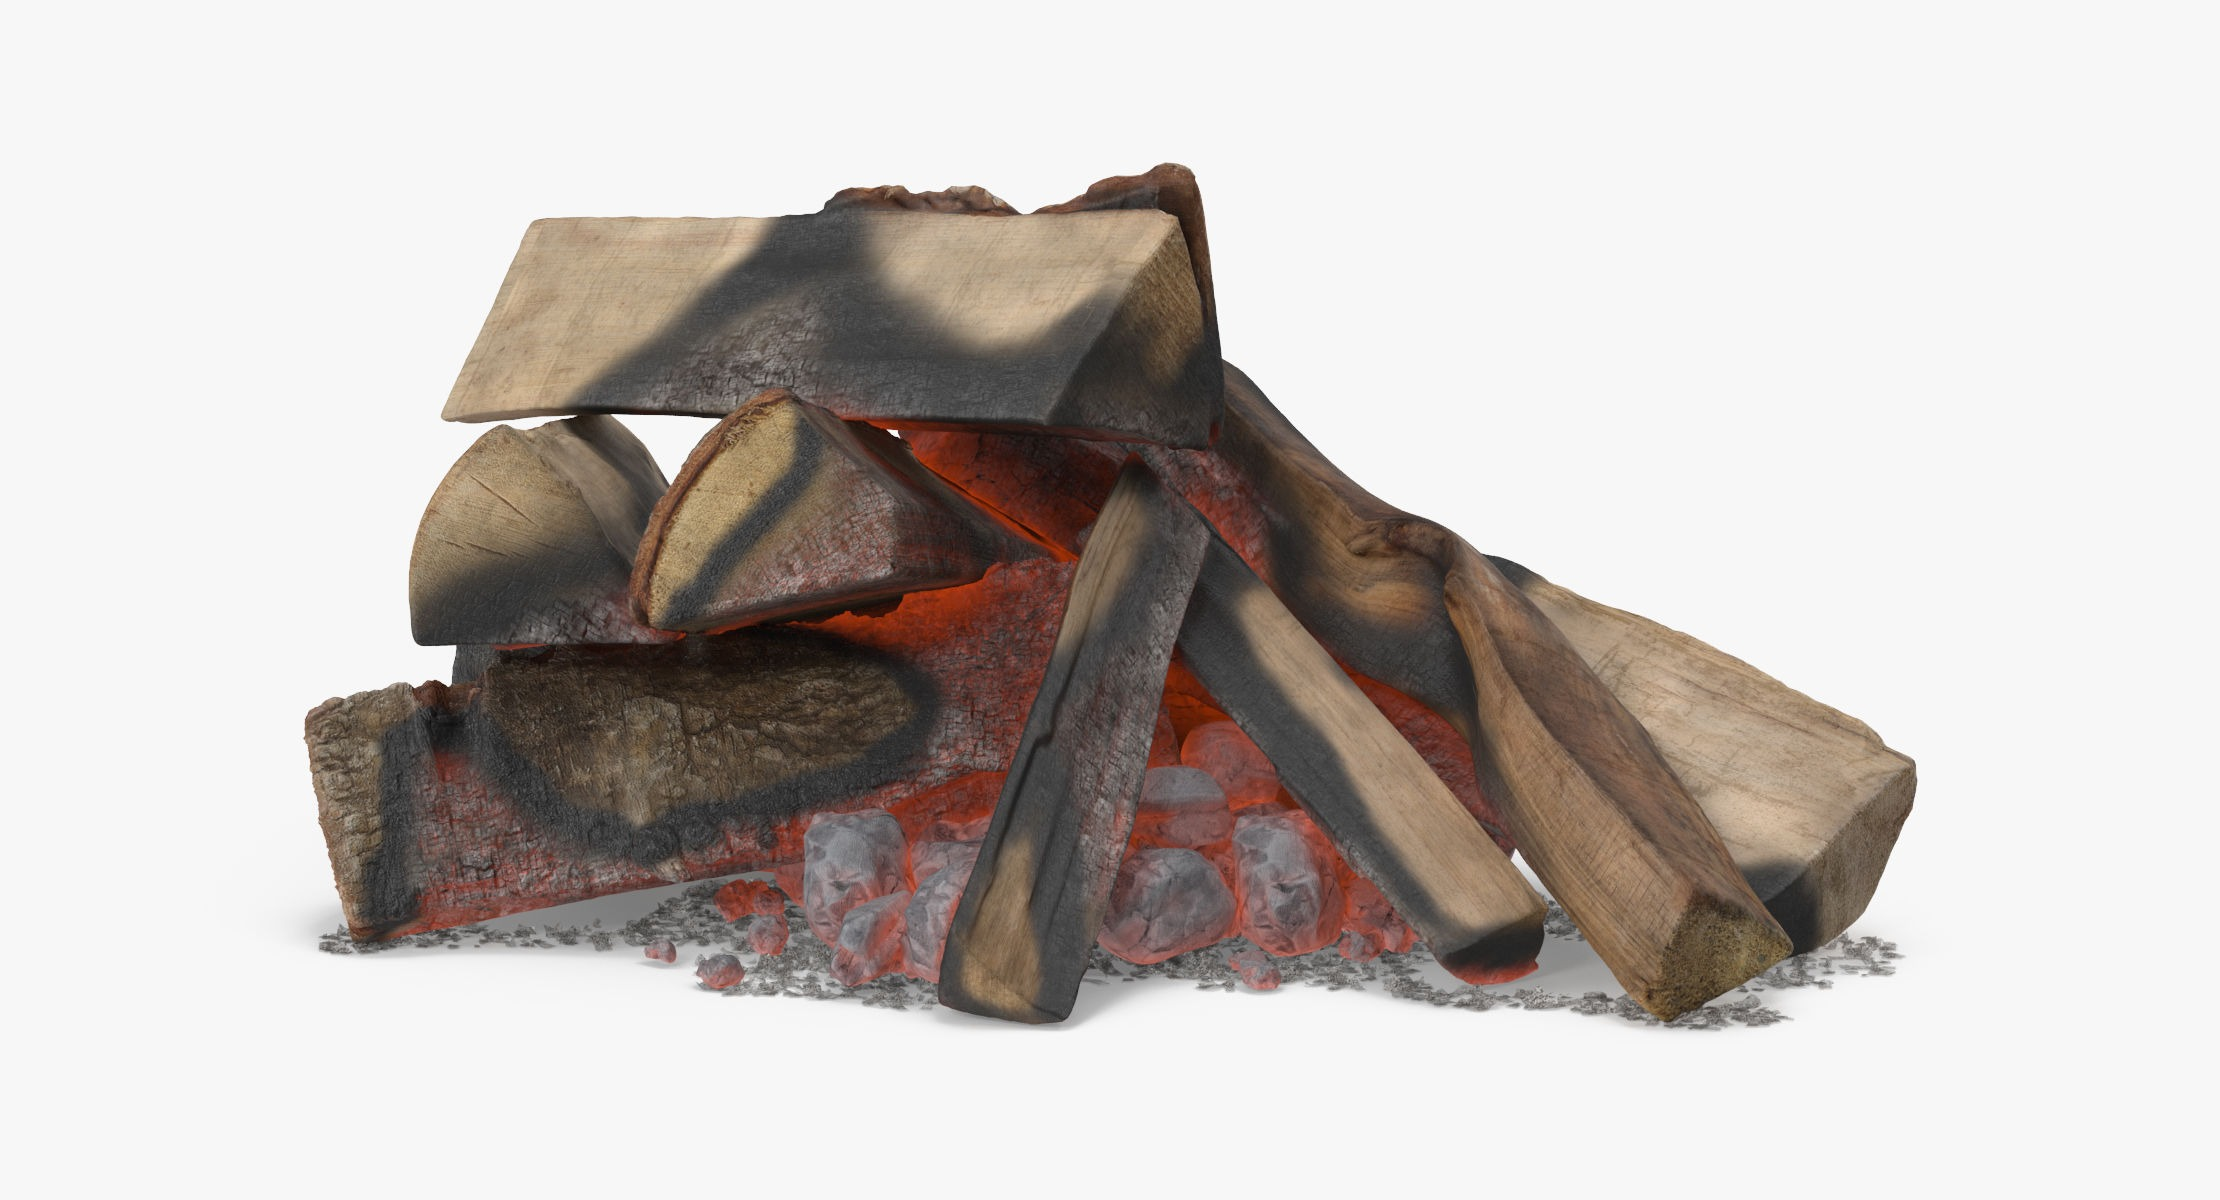 Fire Wood and Coals 02 - reel 1